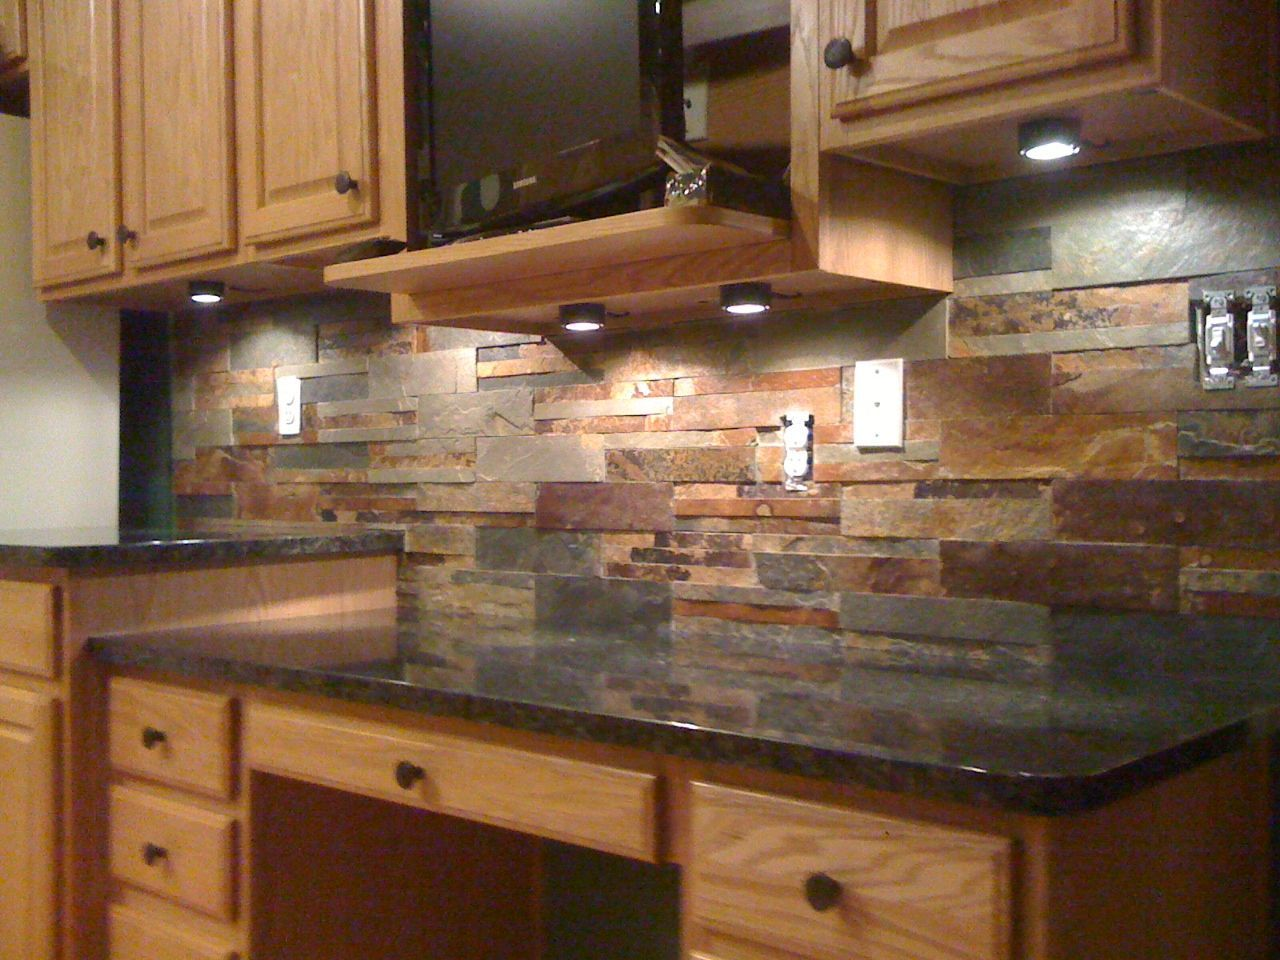 dark granite kitchen counters and backsplash ideas for backsplash with black granite countertops Google Search